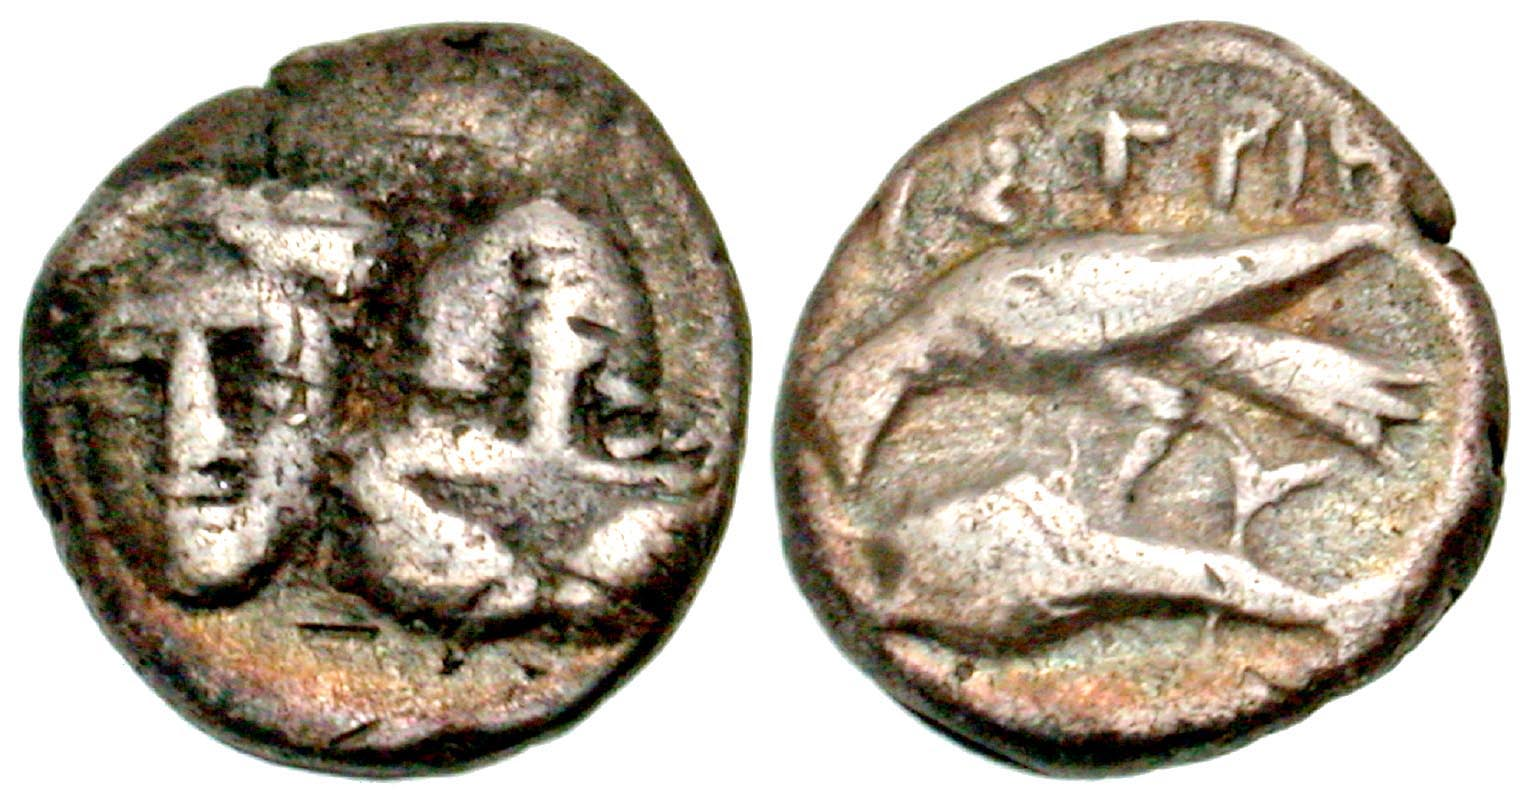 Moesia, Istros. civic issue. 4th century B.C. AR hemiobol. From the D. Thomas Collection.